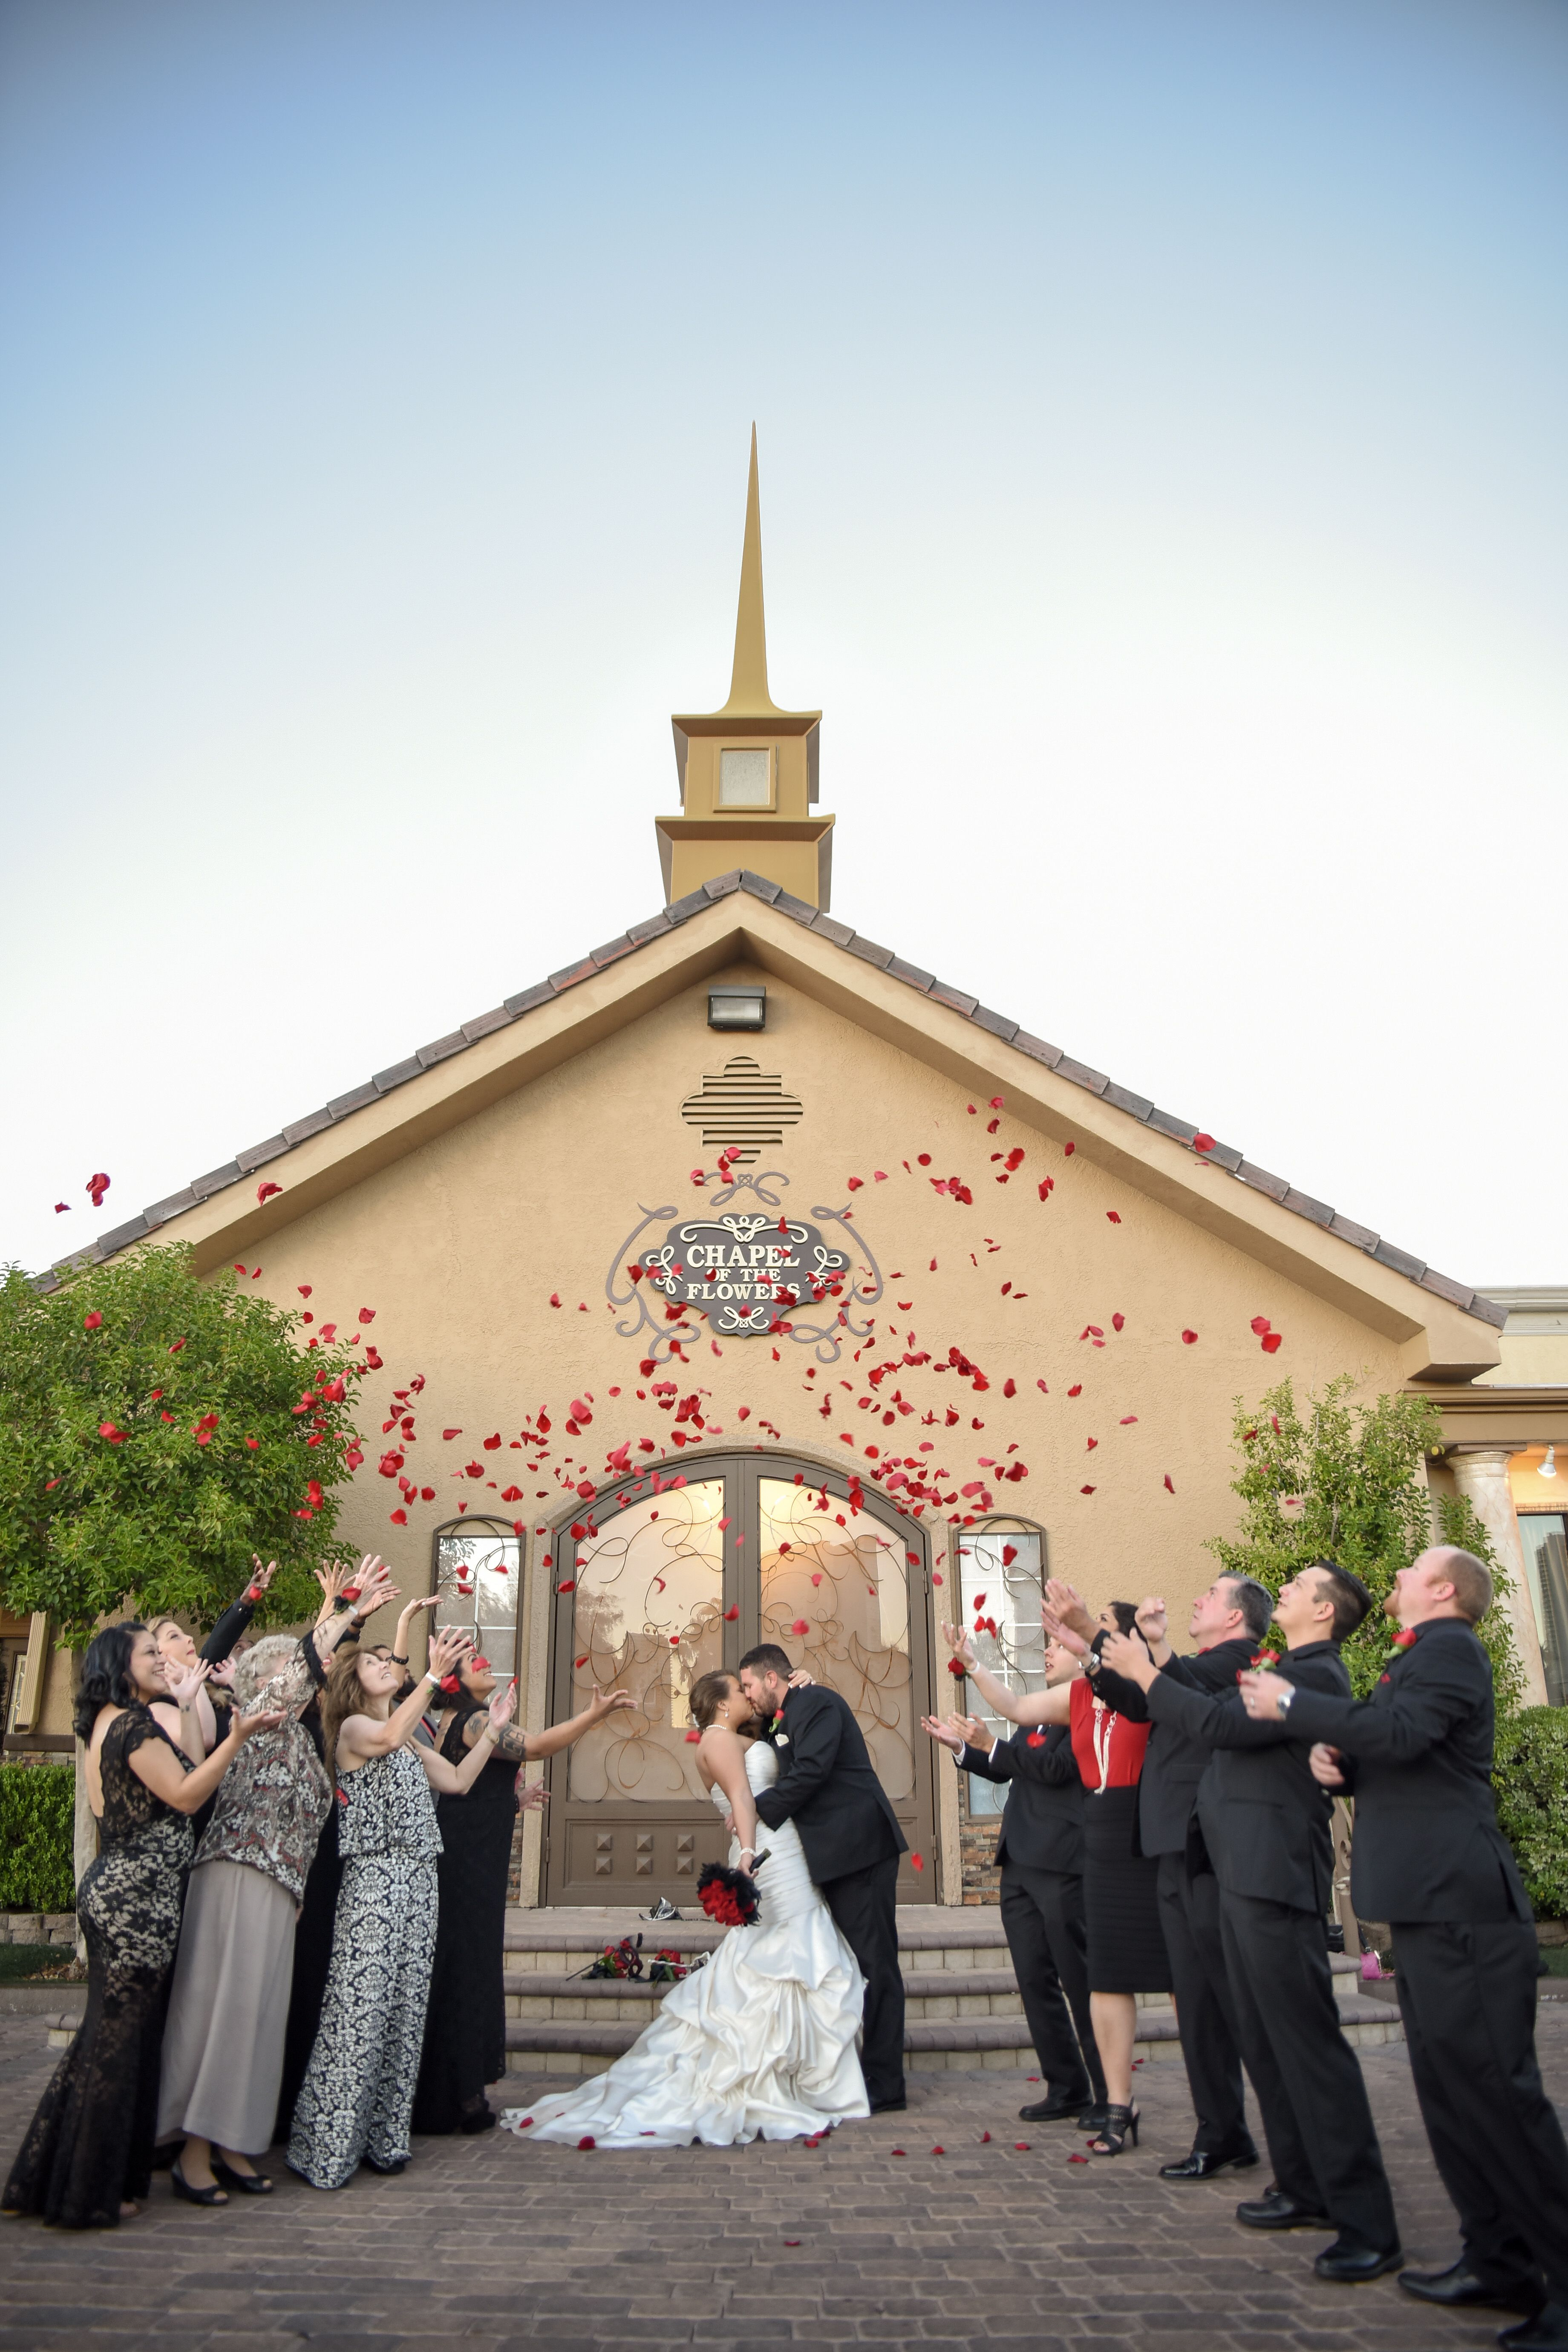 vegas wedding chapels Browse our Las Vegas wedding packages and choose from Lake Las Vegas Chapel of the Flowers or the Grand Canyon Find your Vegas wedding package here